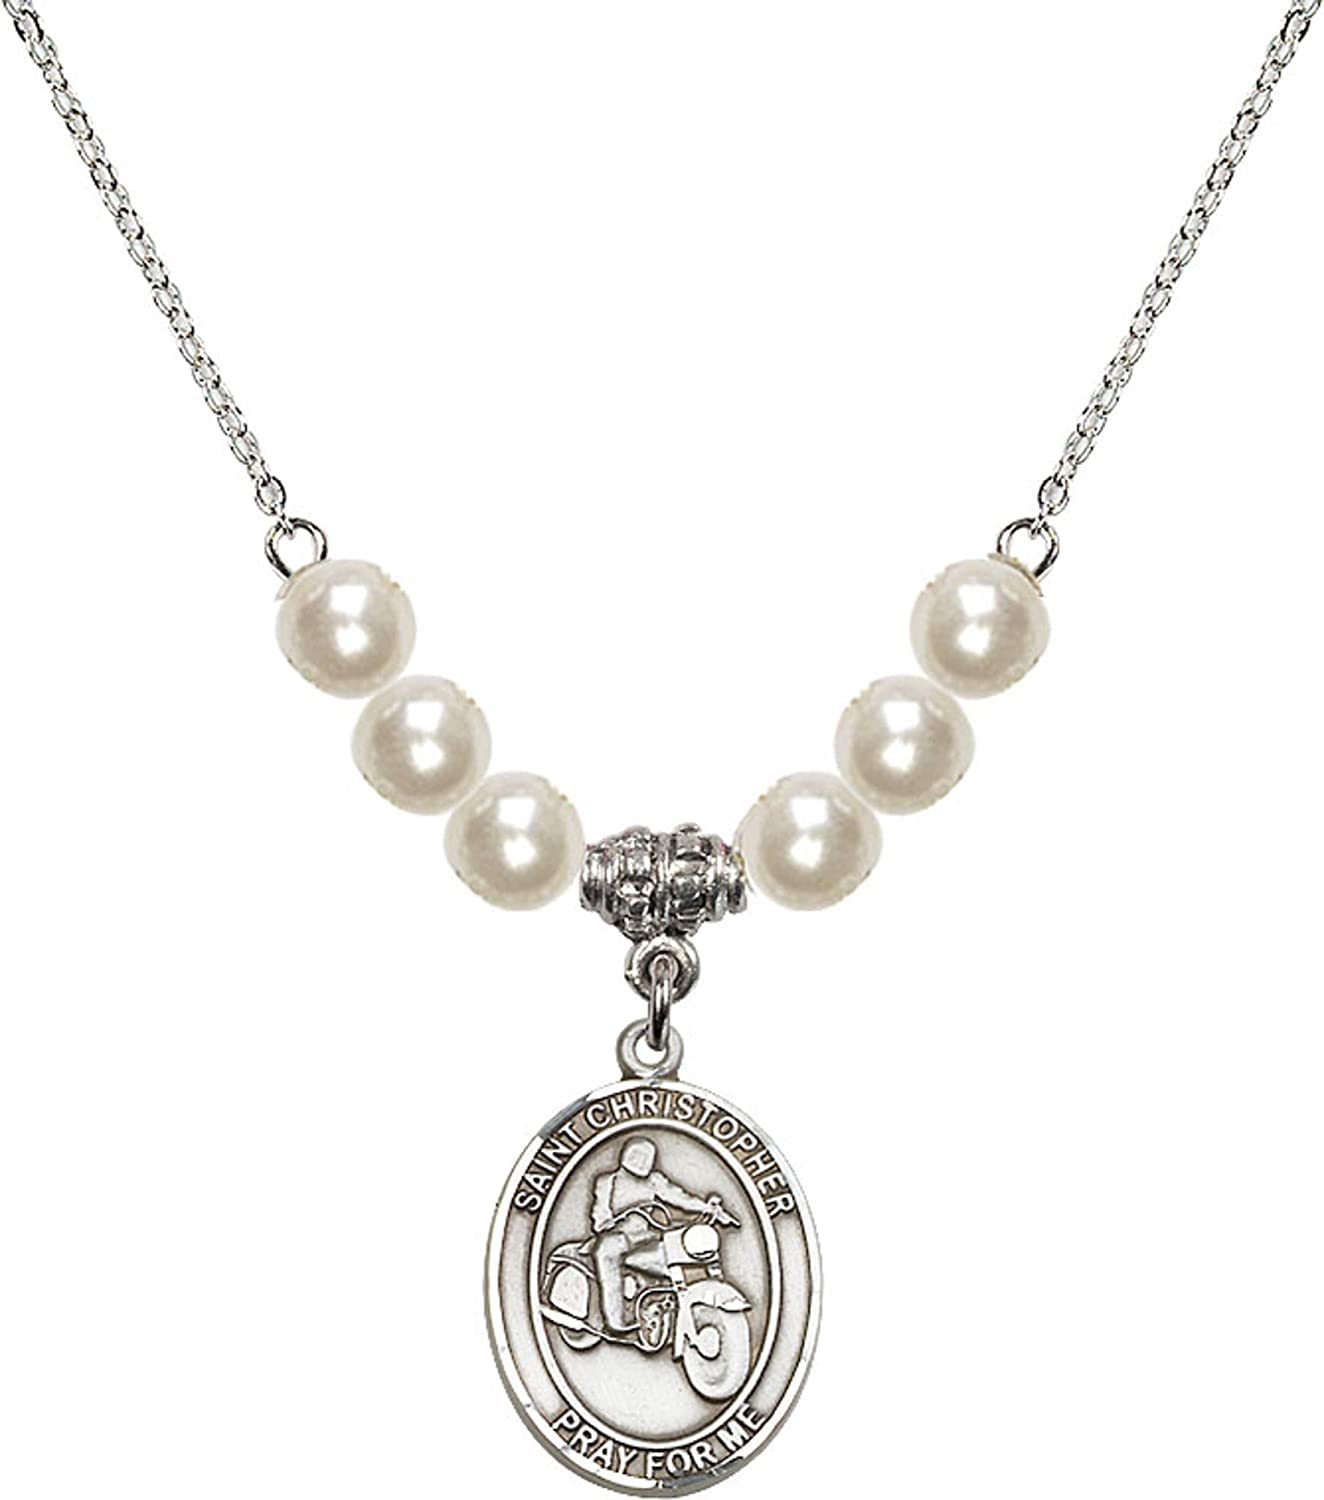 Bonyak Jewelry 18 Inch Rhodium Plated Necklace w// 6mm Faux-Pearl Beads and Saint Christopher//Motorcycle Charm